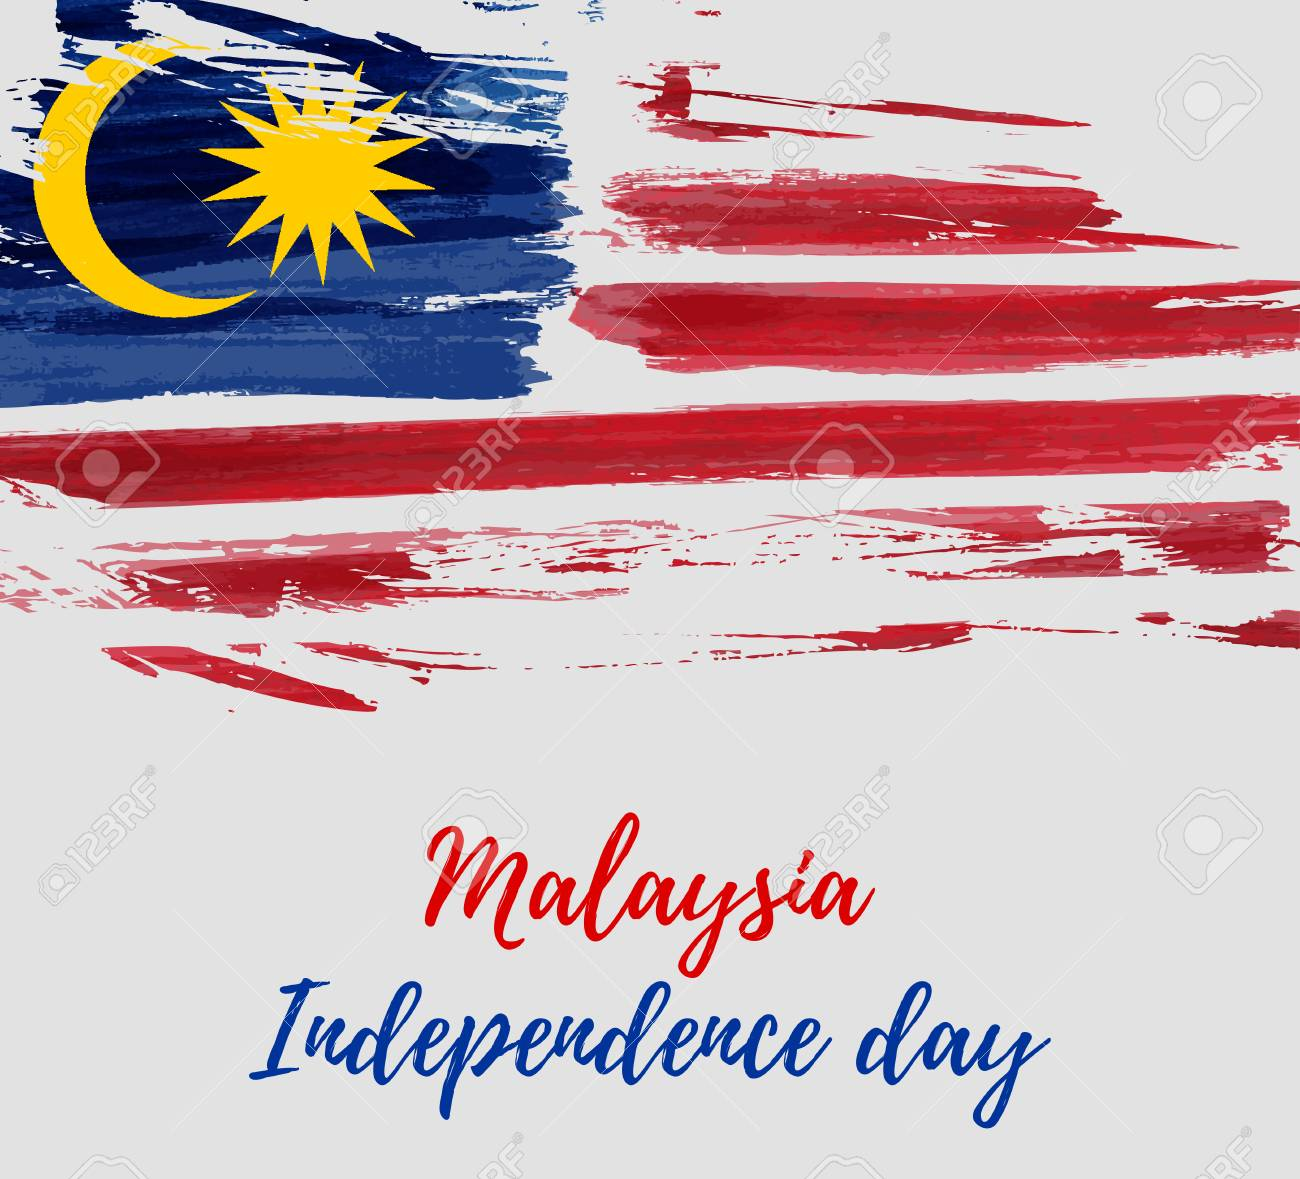 Malaysia Independence day background. With grunge painted flag of Malaysia. Hari Merdeka holiday. Template for poster, banner, flyer, invitation, etc. - 101608354